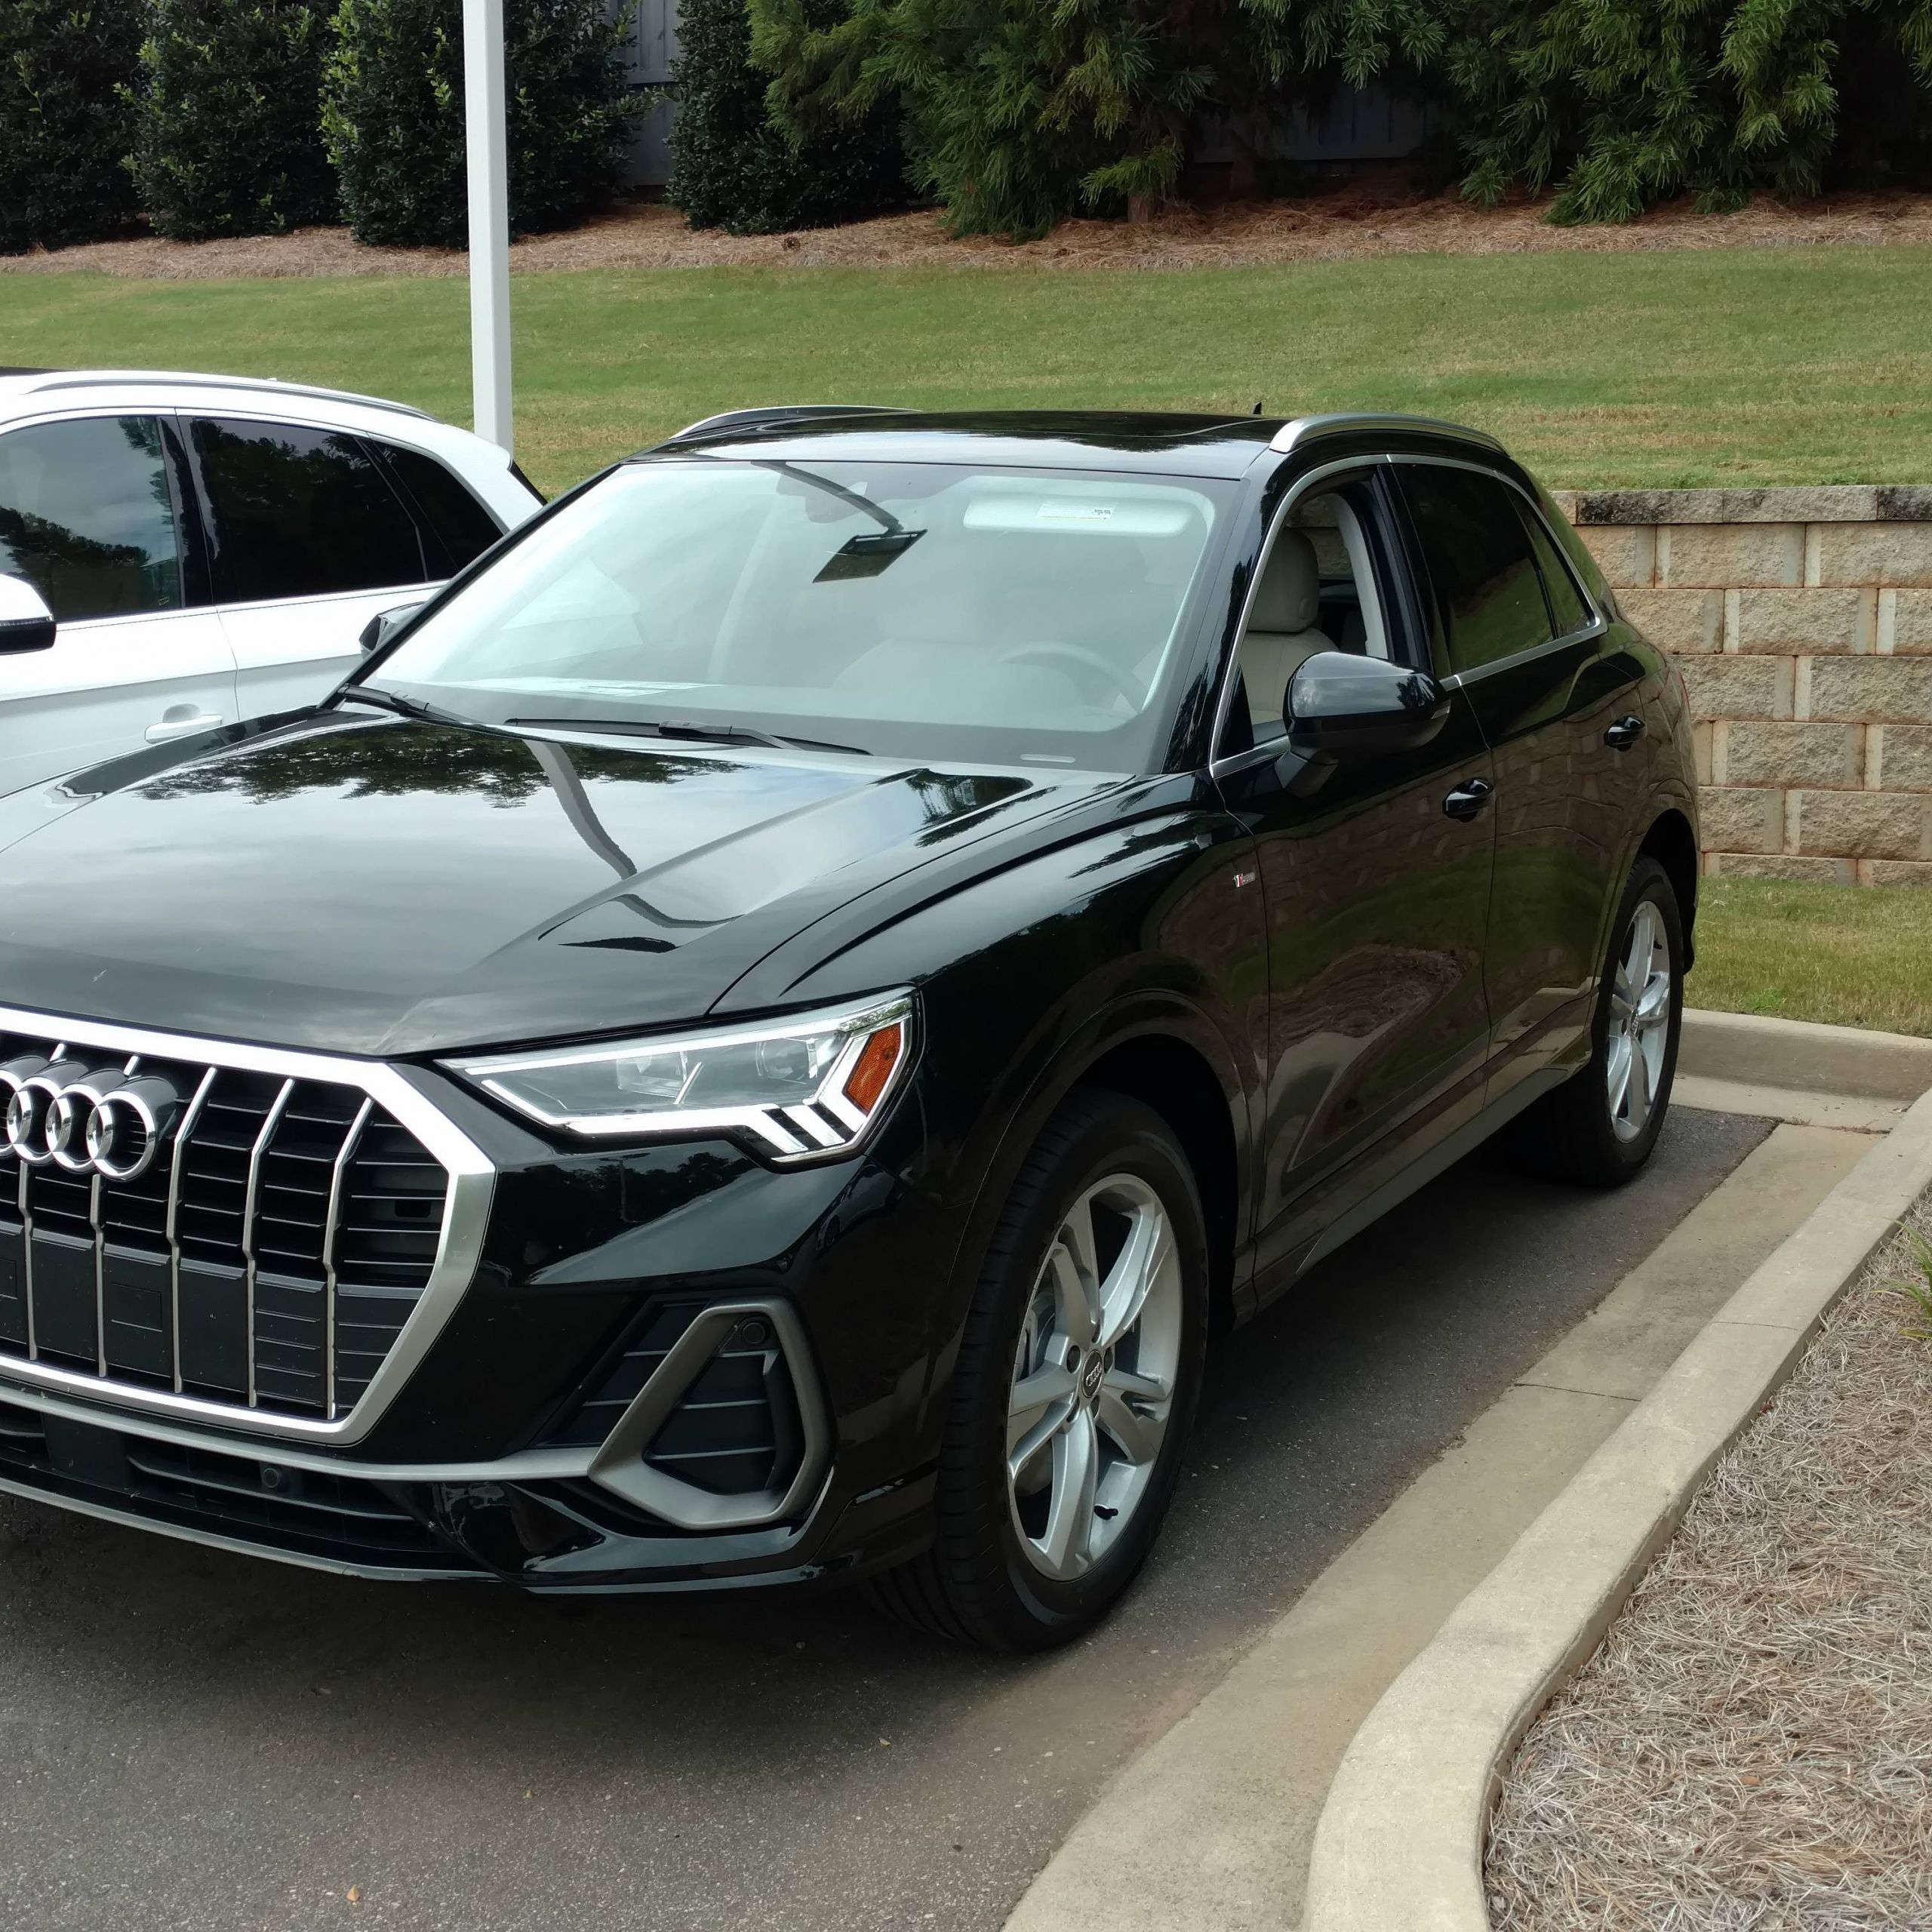 Audi Q3 for Sale Inspirational Ross Tech forums